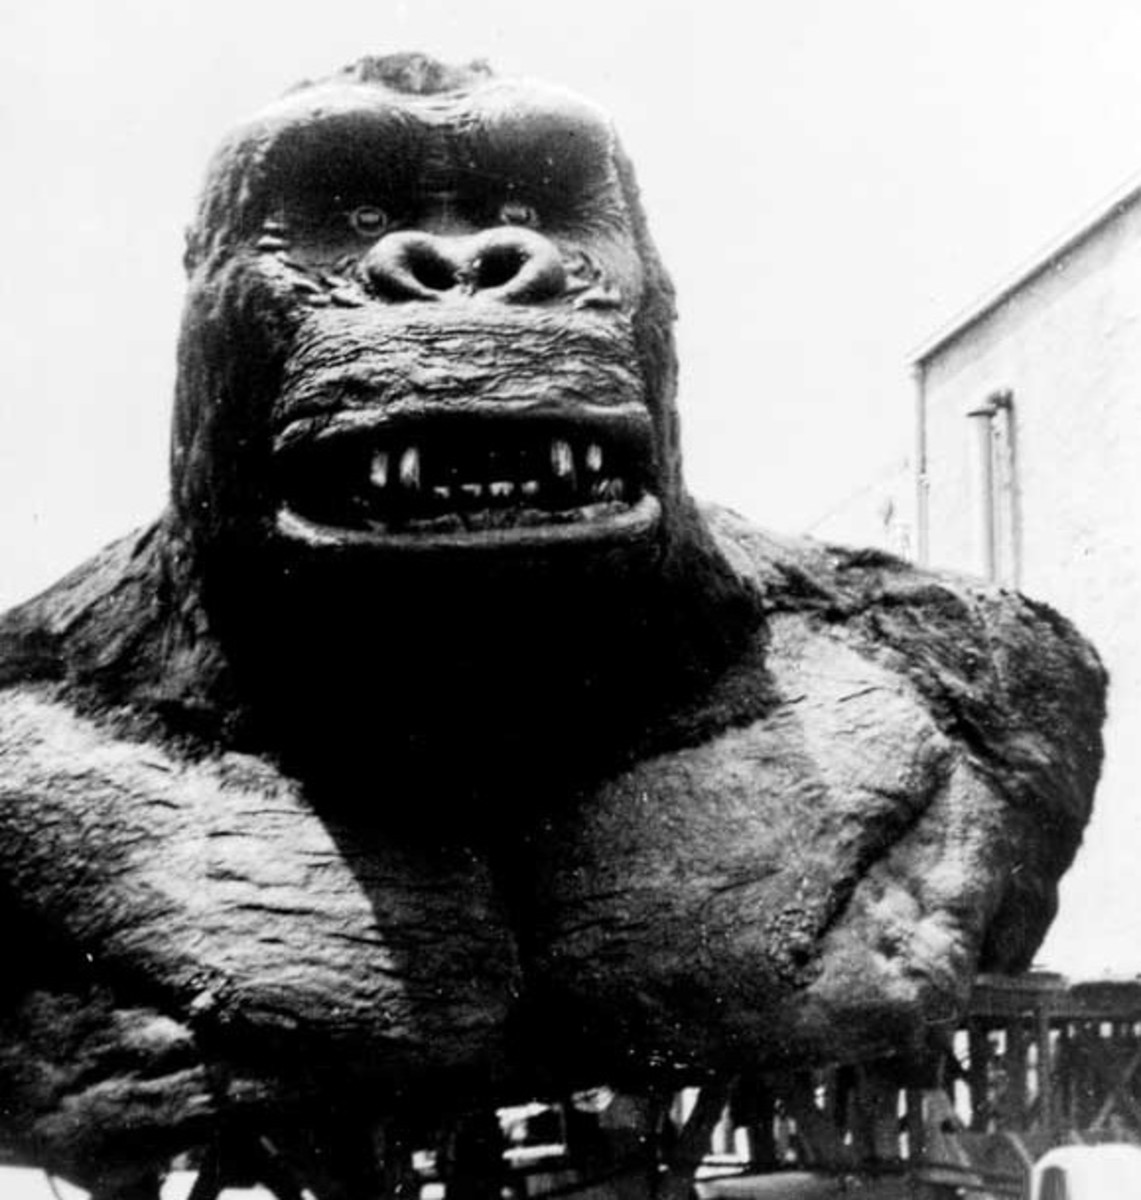 The giant bust of Kong